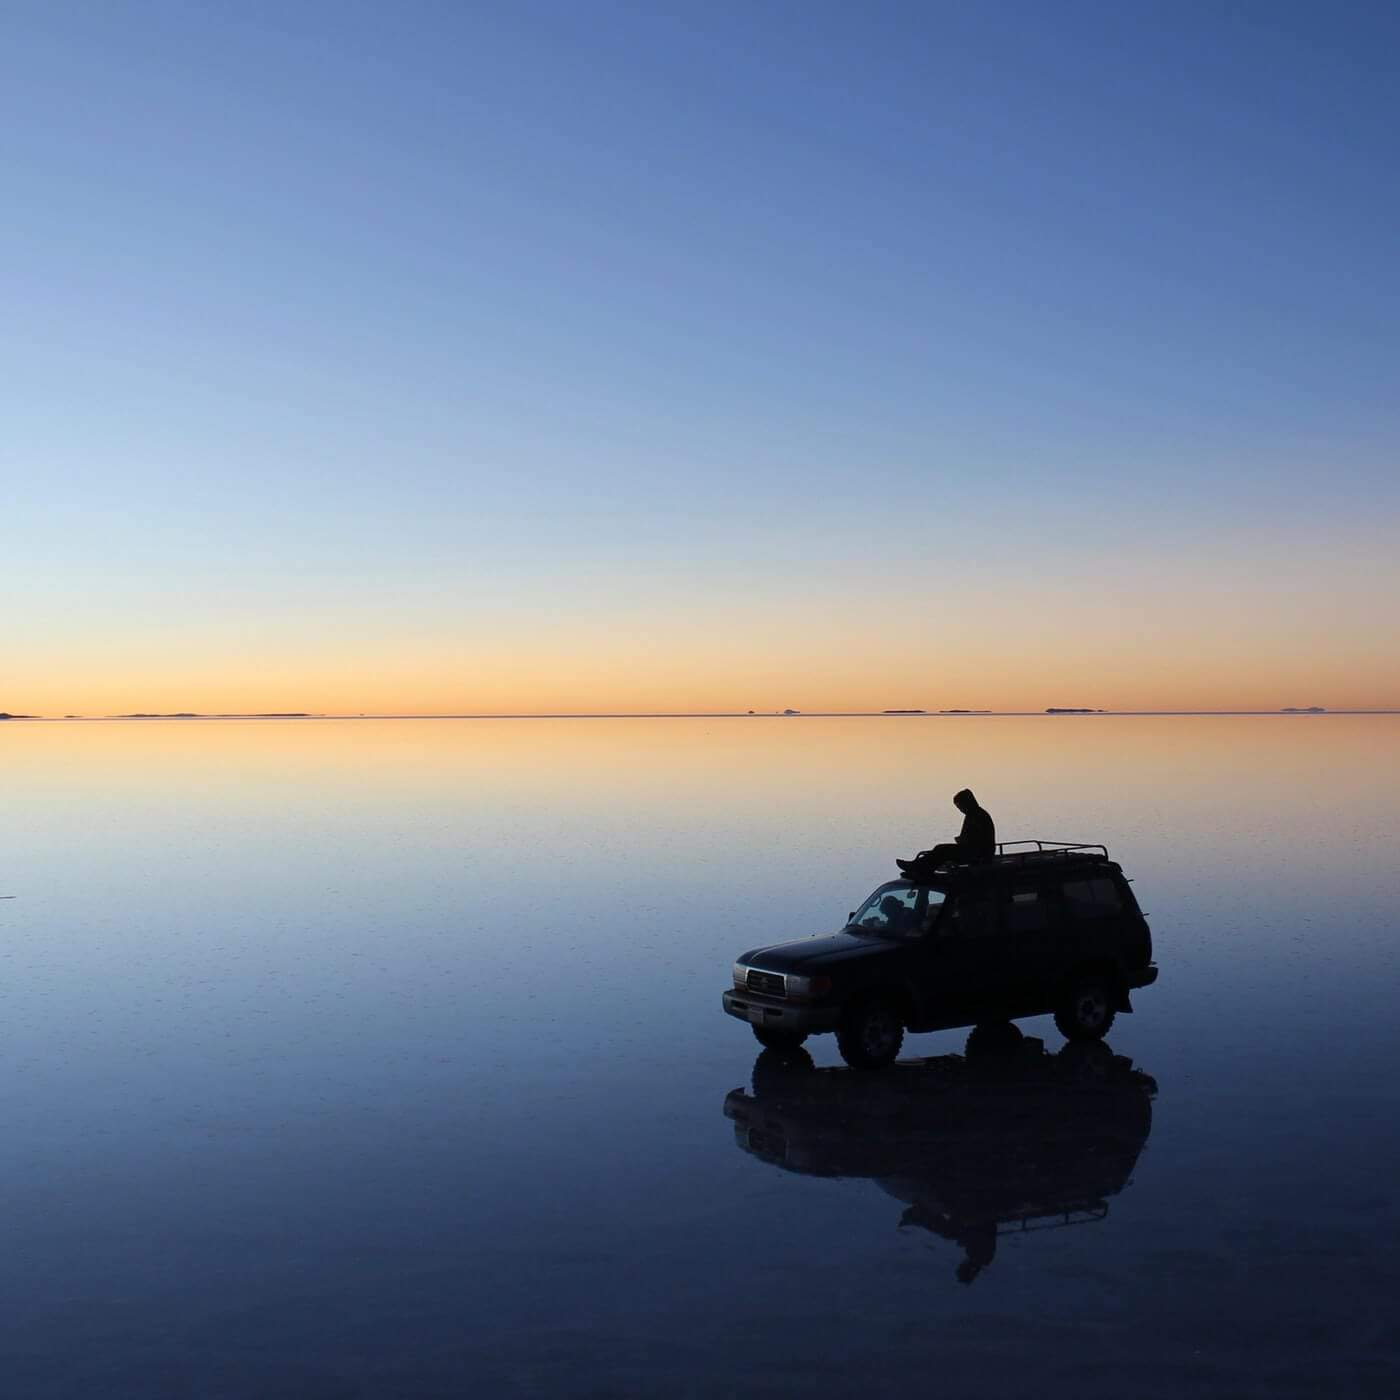 Sunrise at Salar de Uyuni, Bolivia